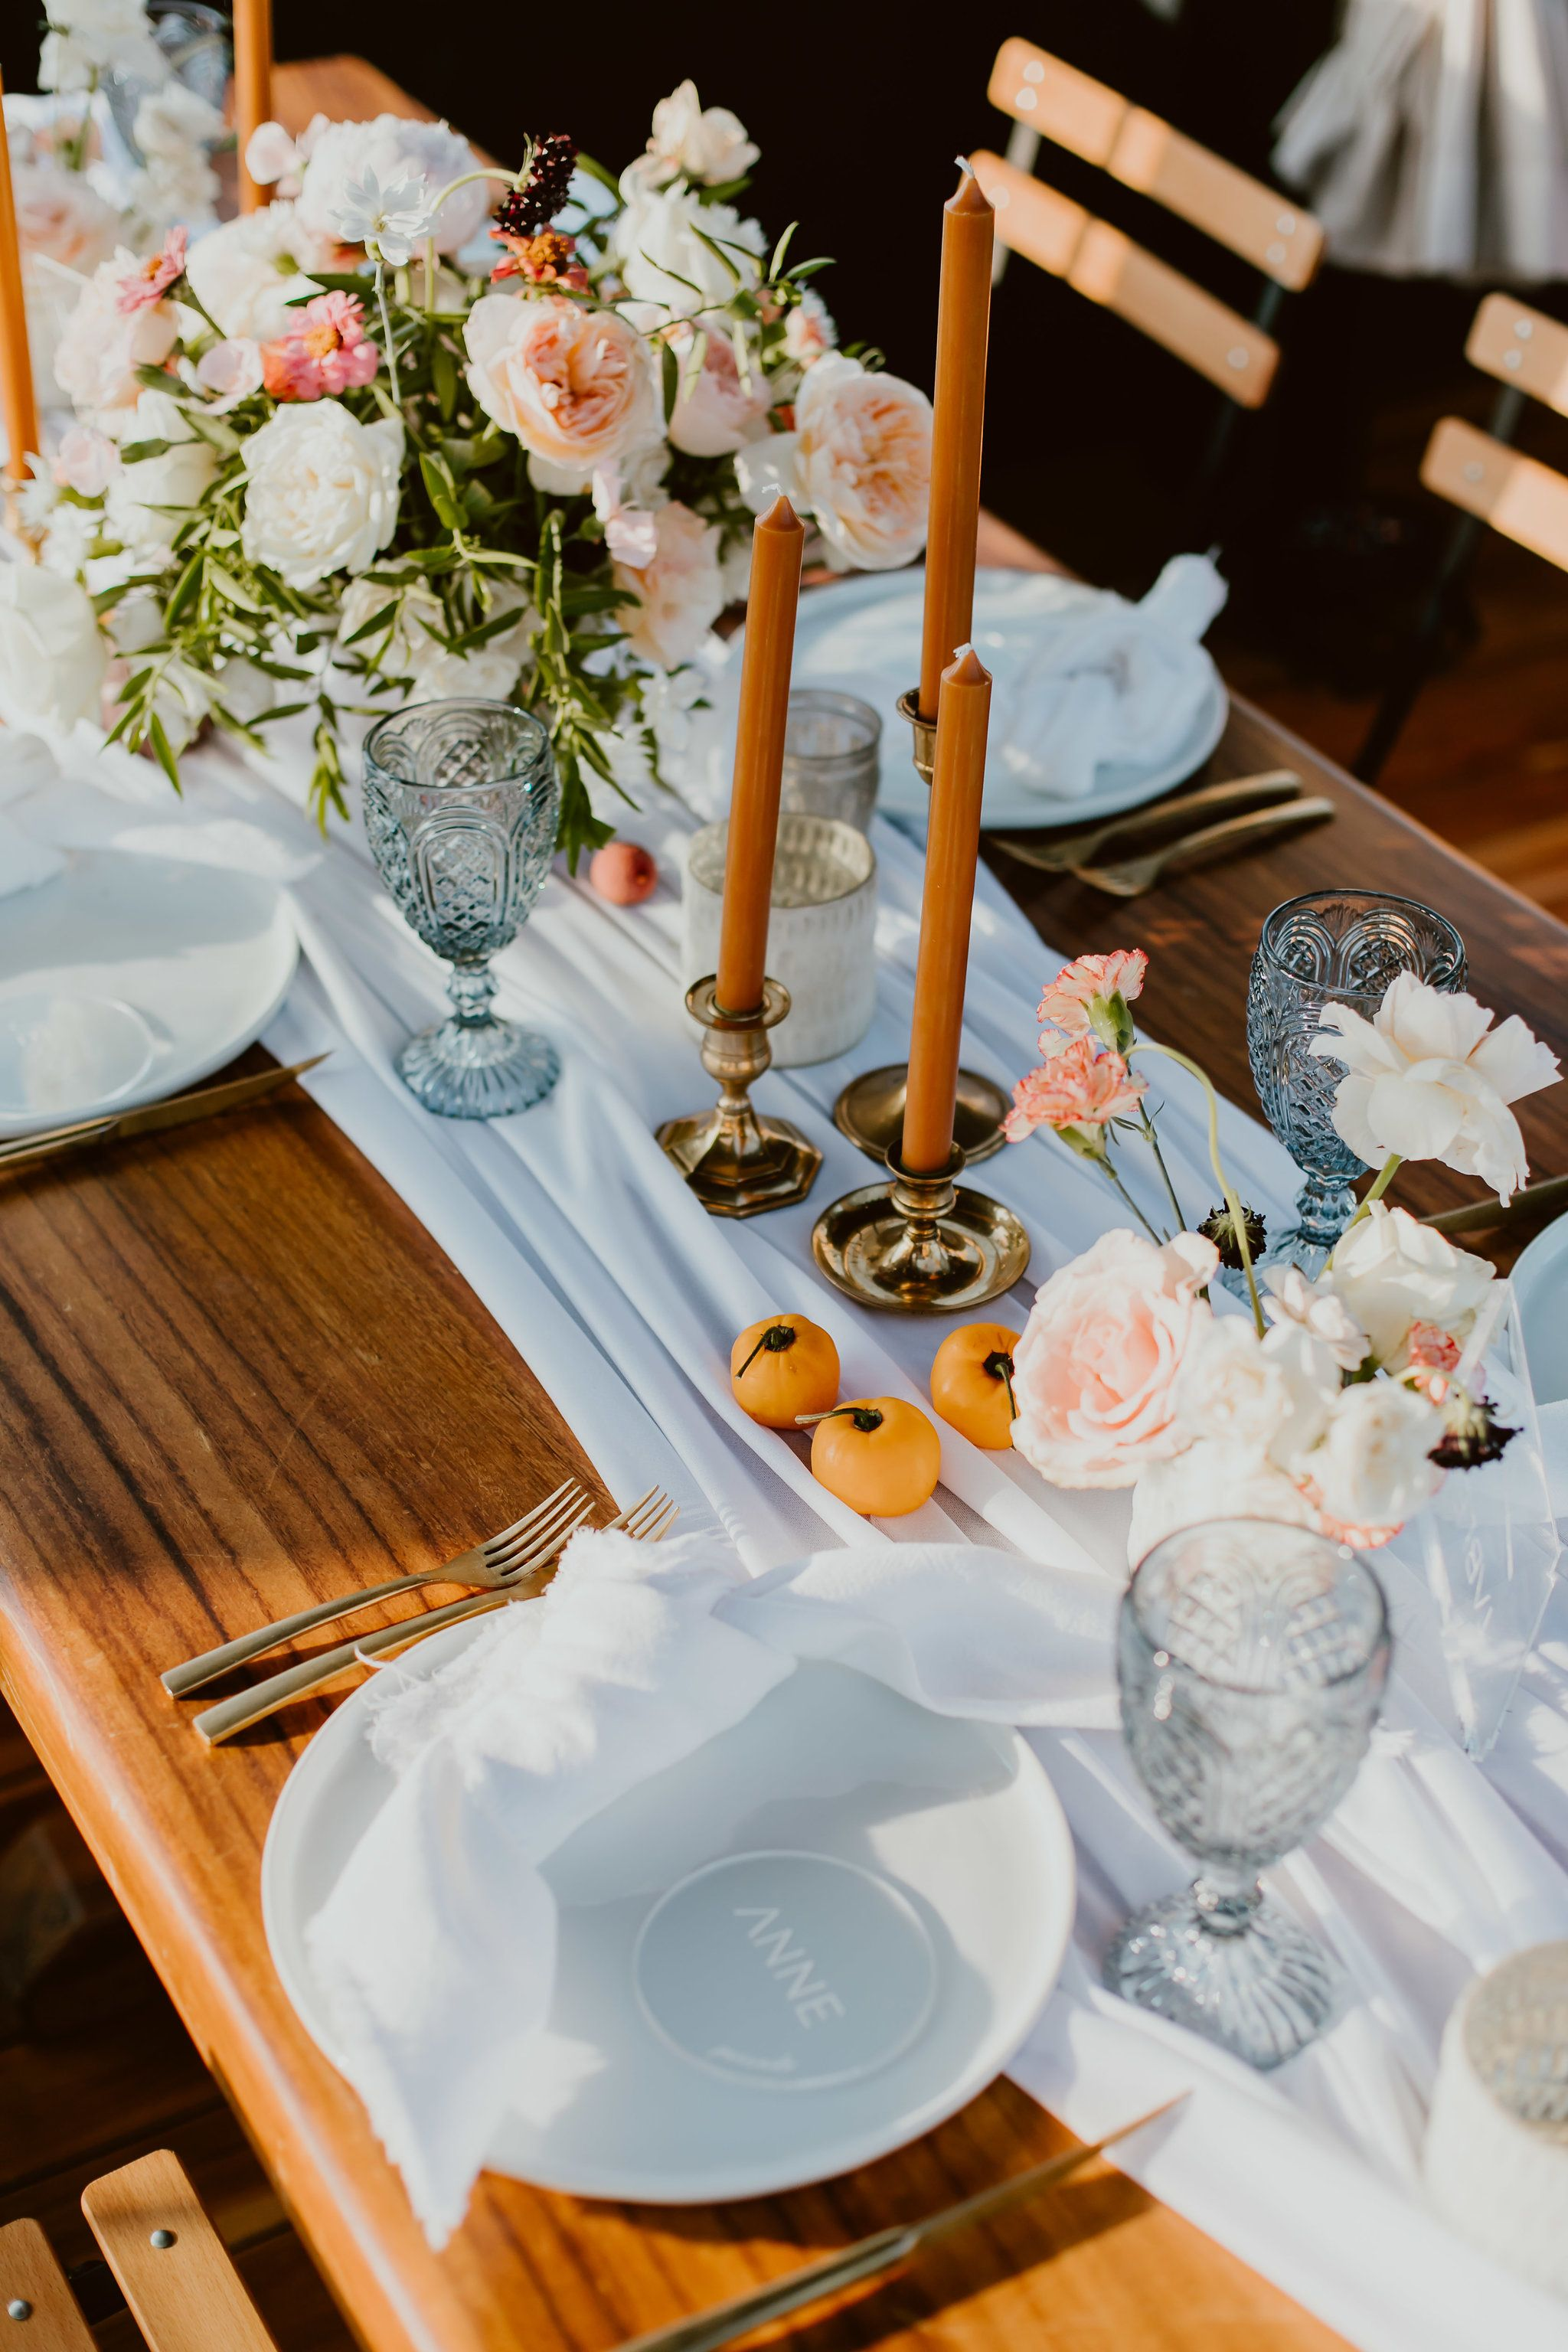 Beautiful table setup with white chargers, white napkins and beautiful table runners. There were brown candle sticks to match the papayas and beautiful wood tables to match. Candles and Flower centerpieces throughout the tables made it look full but still clean.